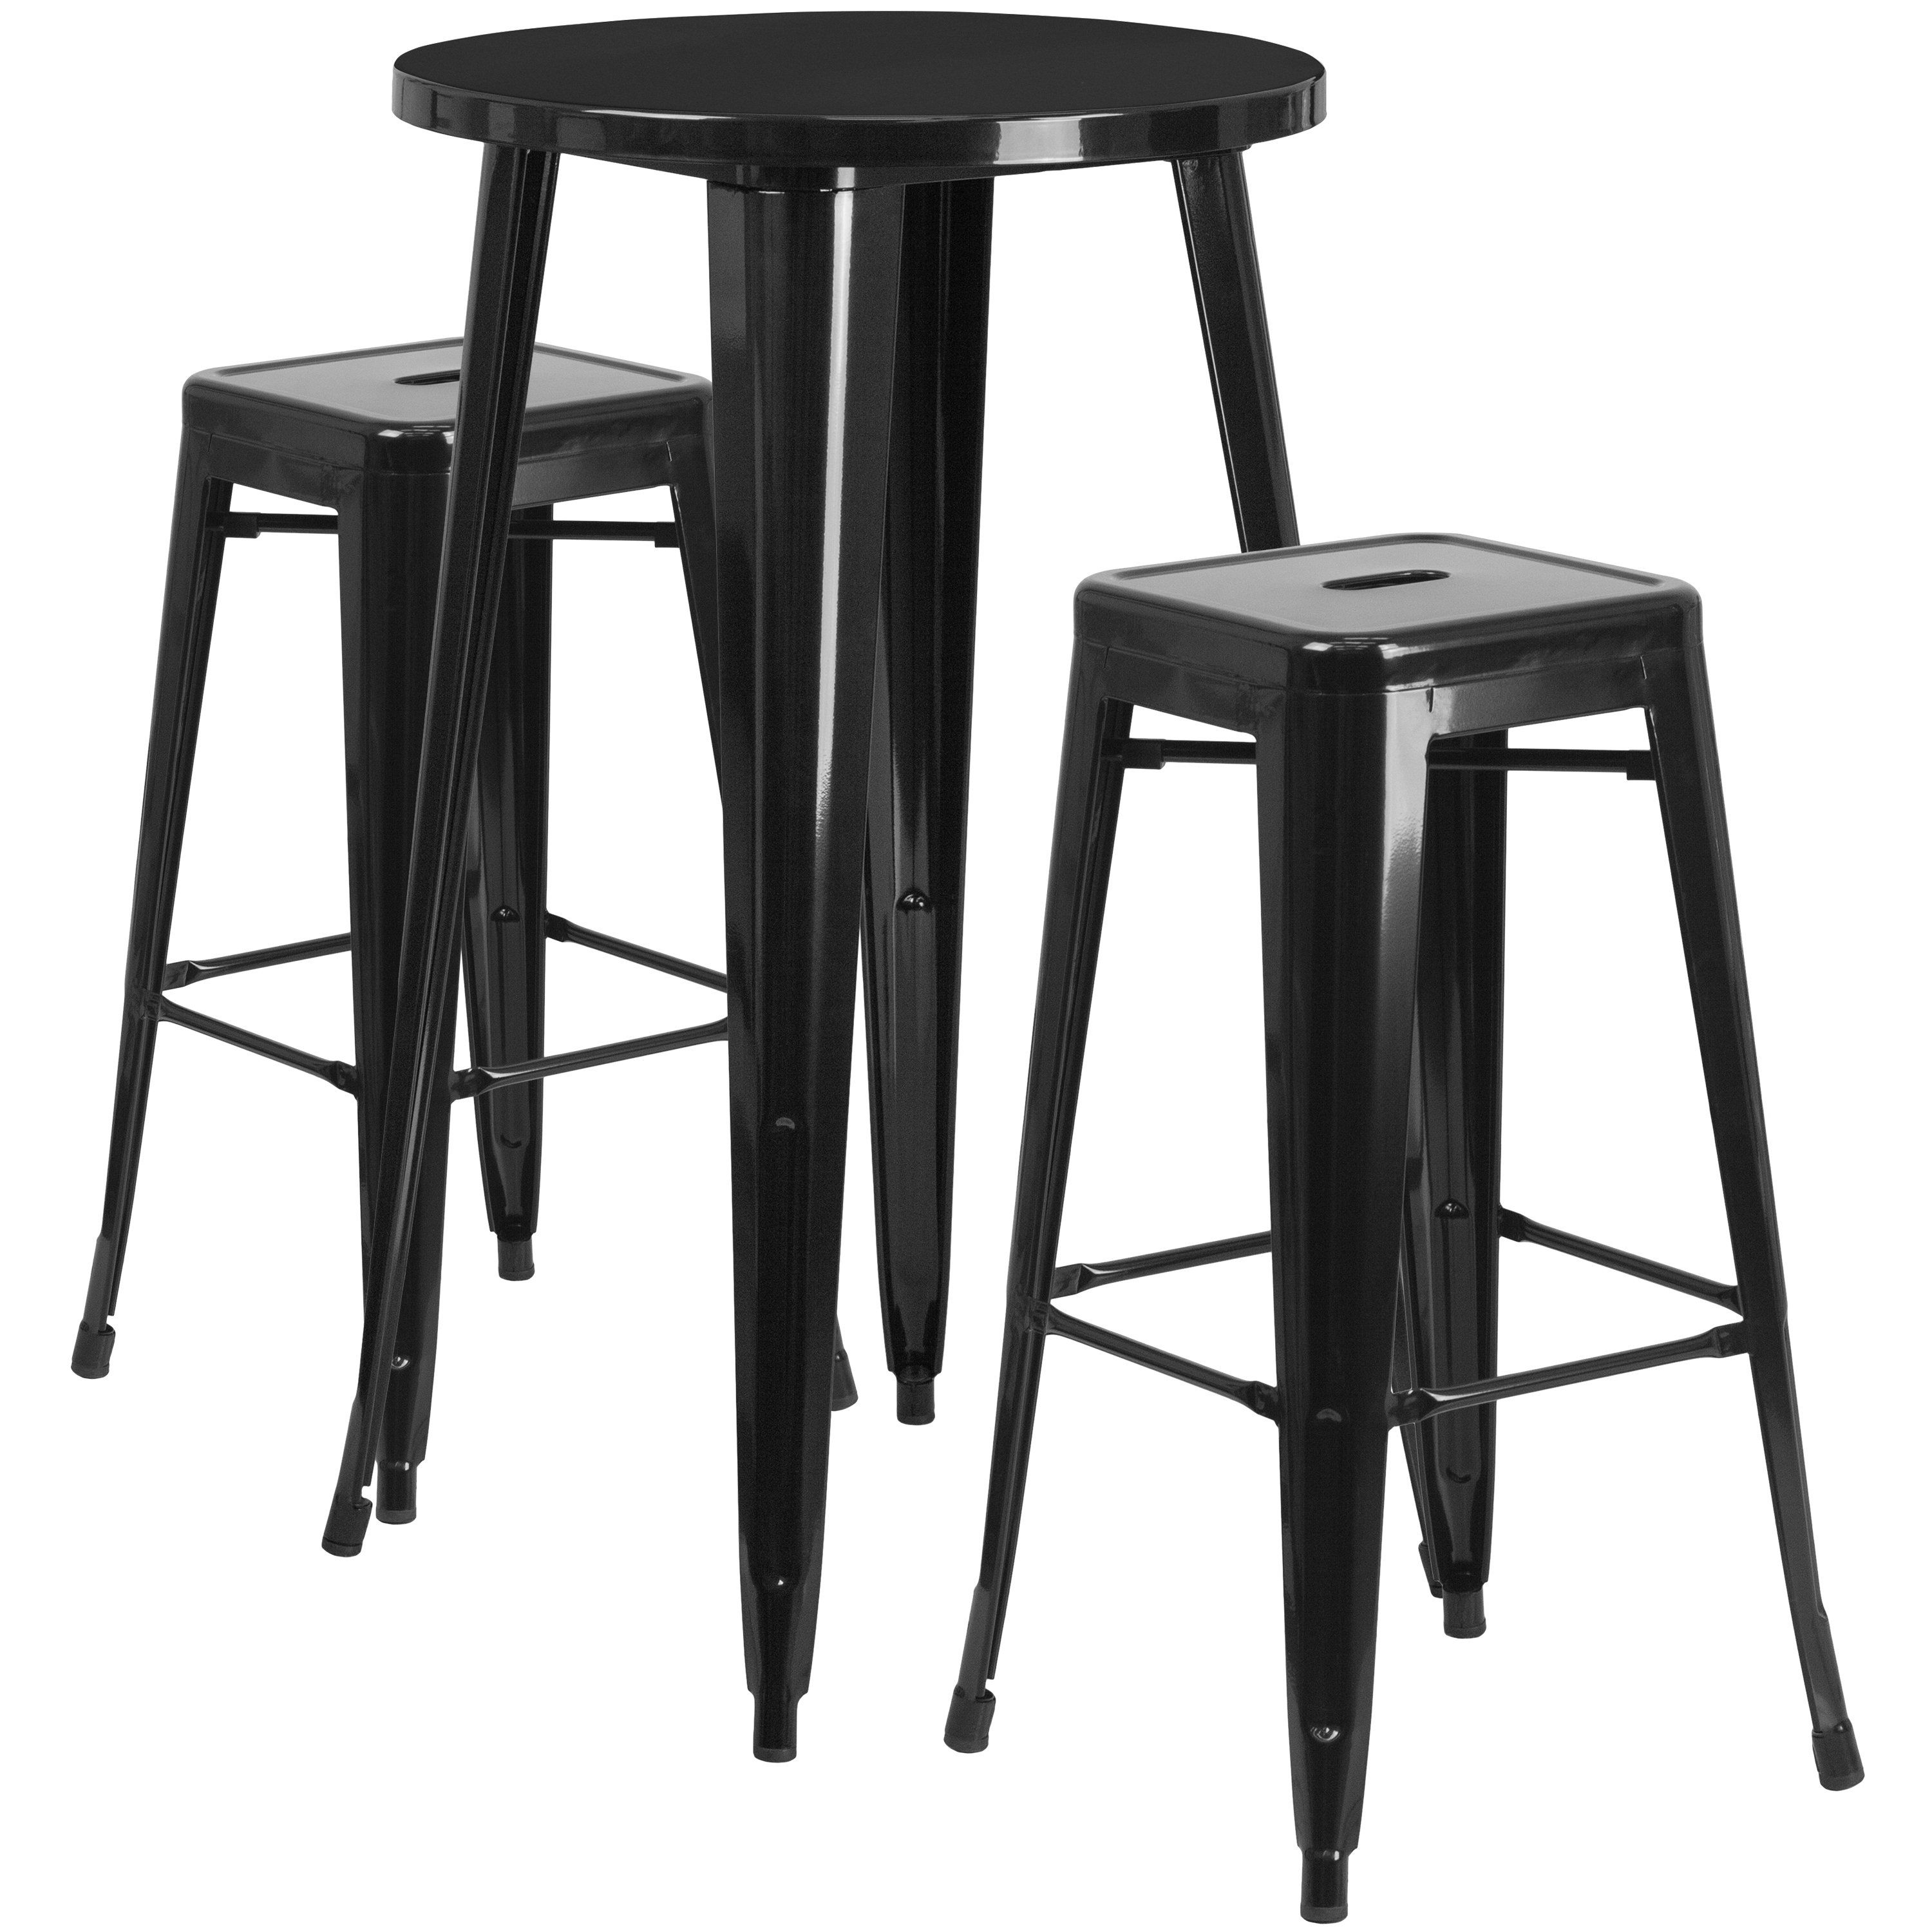 24u0027u0027 Round Black Metal Indoor Outdoor Bar Table Set With 2 Square Seat